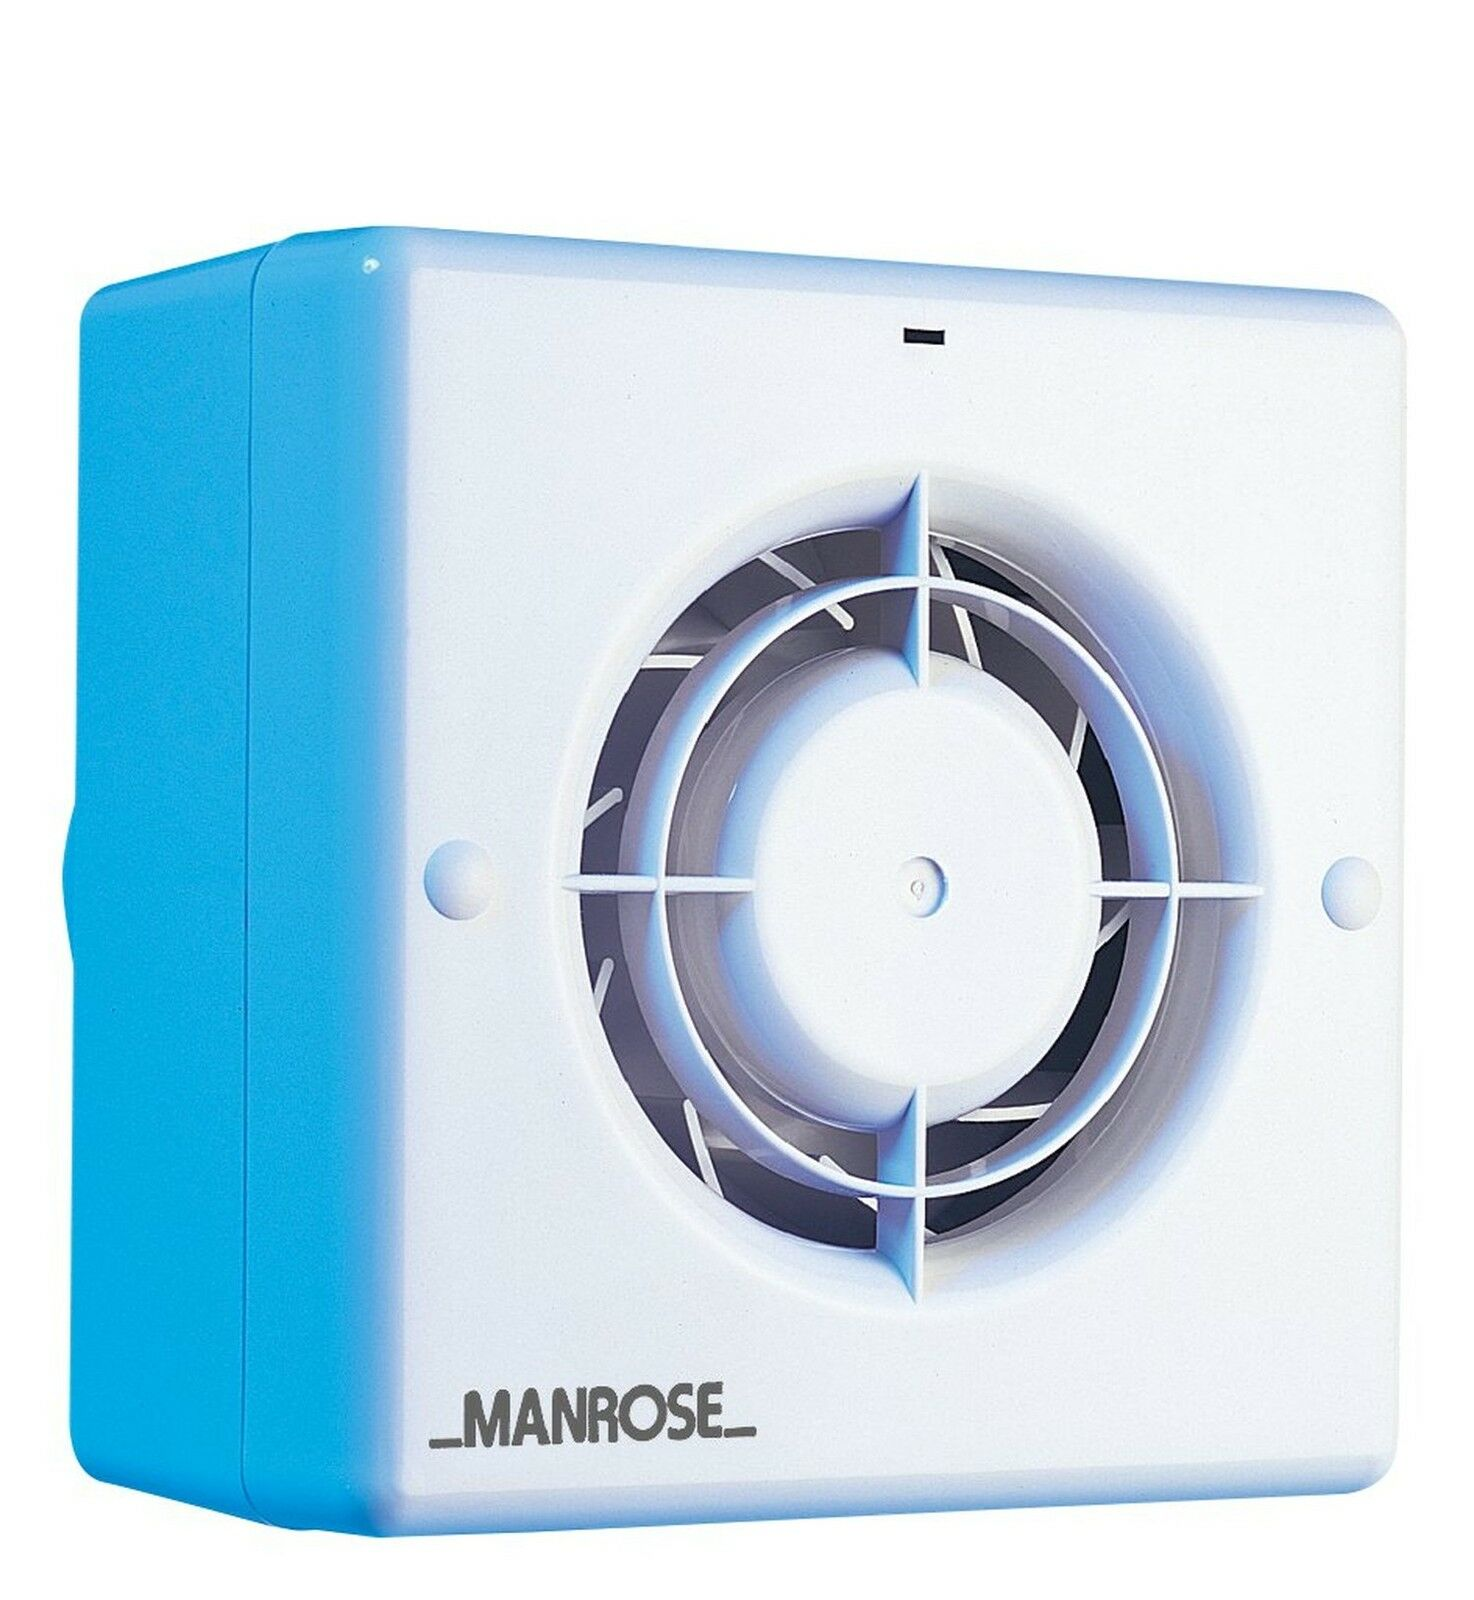 Manrose cf100t centrifugal bathroom toilet extractor fan with timer for 100 for In line centrifugal bathroom fan